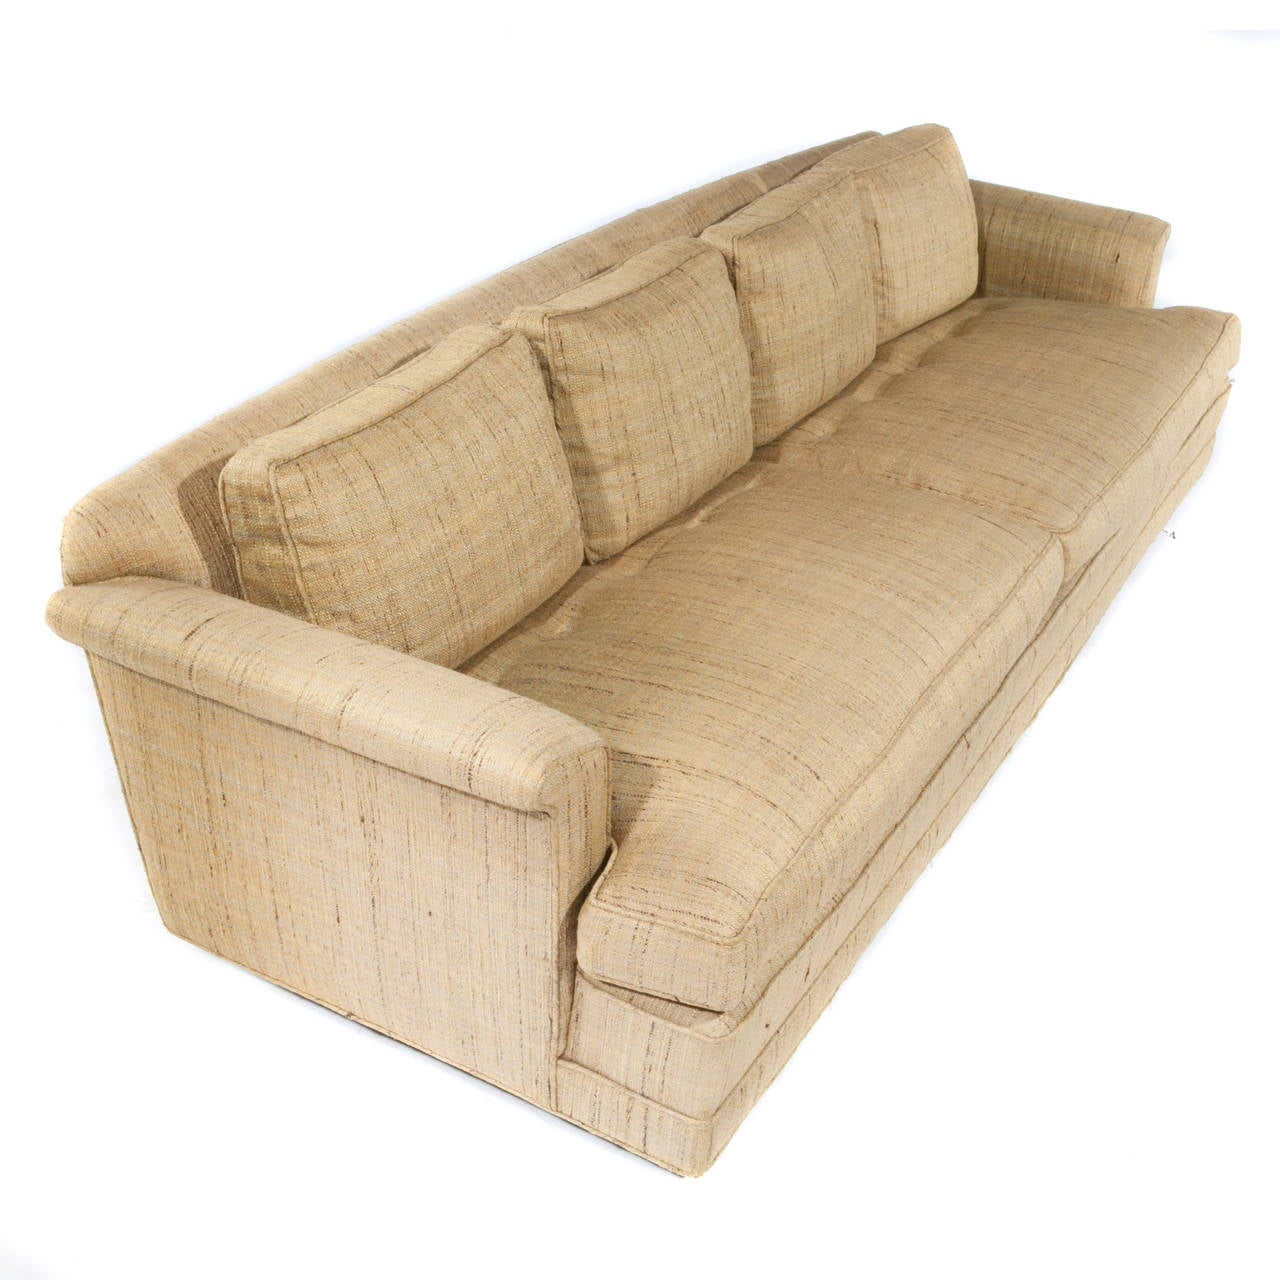 American 1950s Four-Seat Sofa by Edward Wormley for Dunbar For Sale